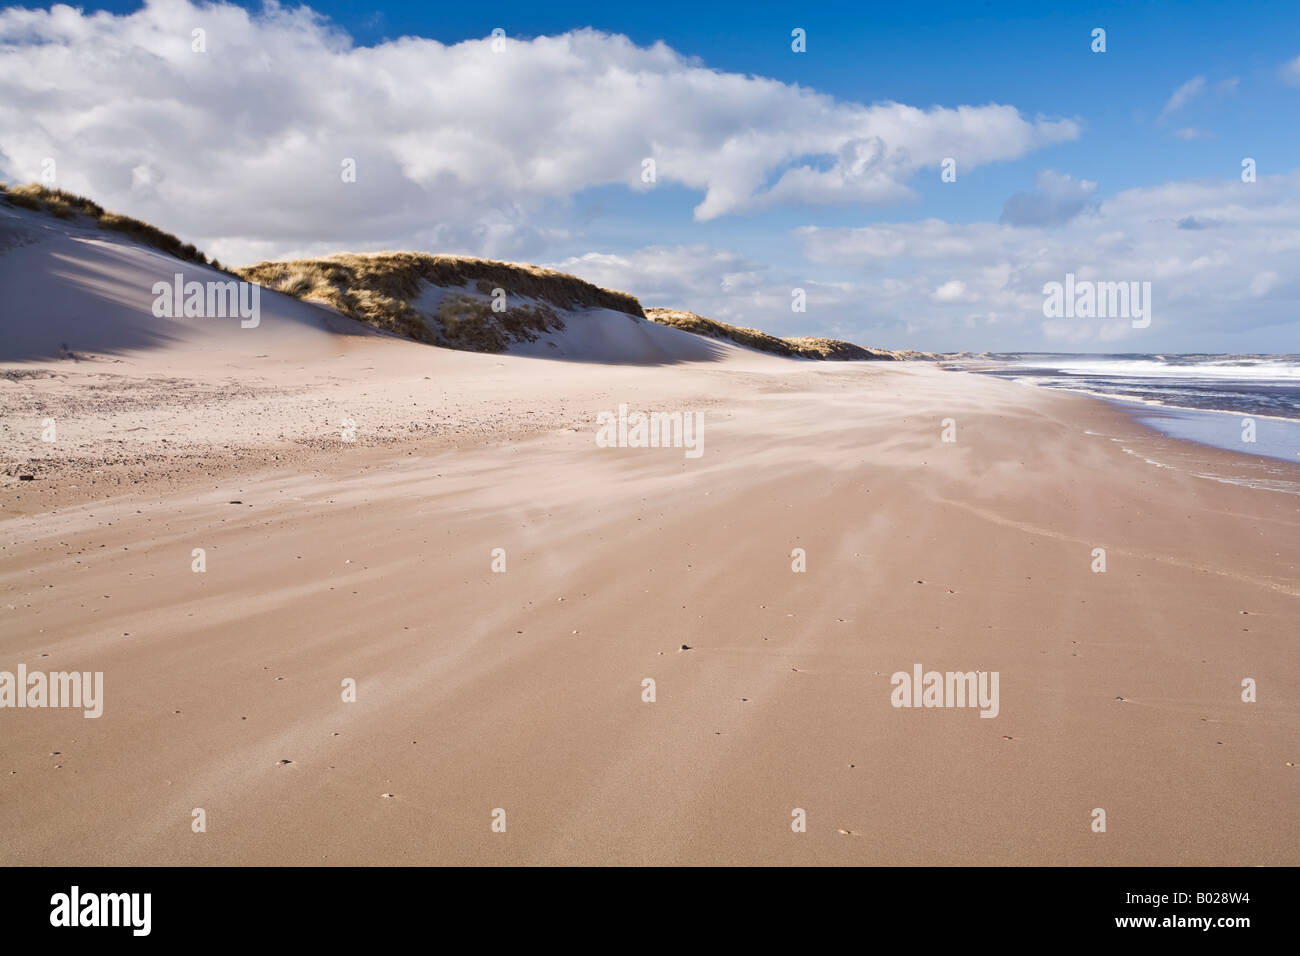 Sand blown across the dunes of Druridge Bay on the Northumbrian coast Northumberland, England - Stock Image